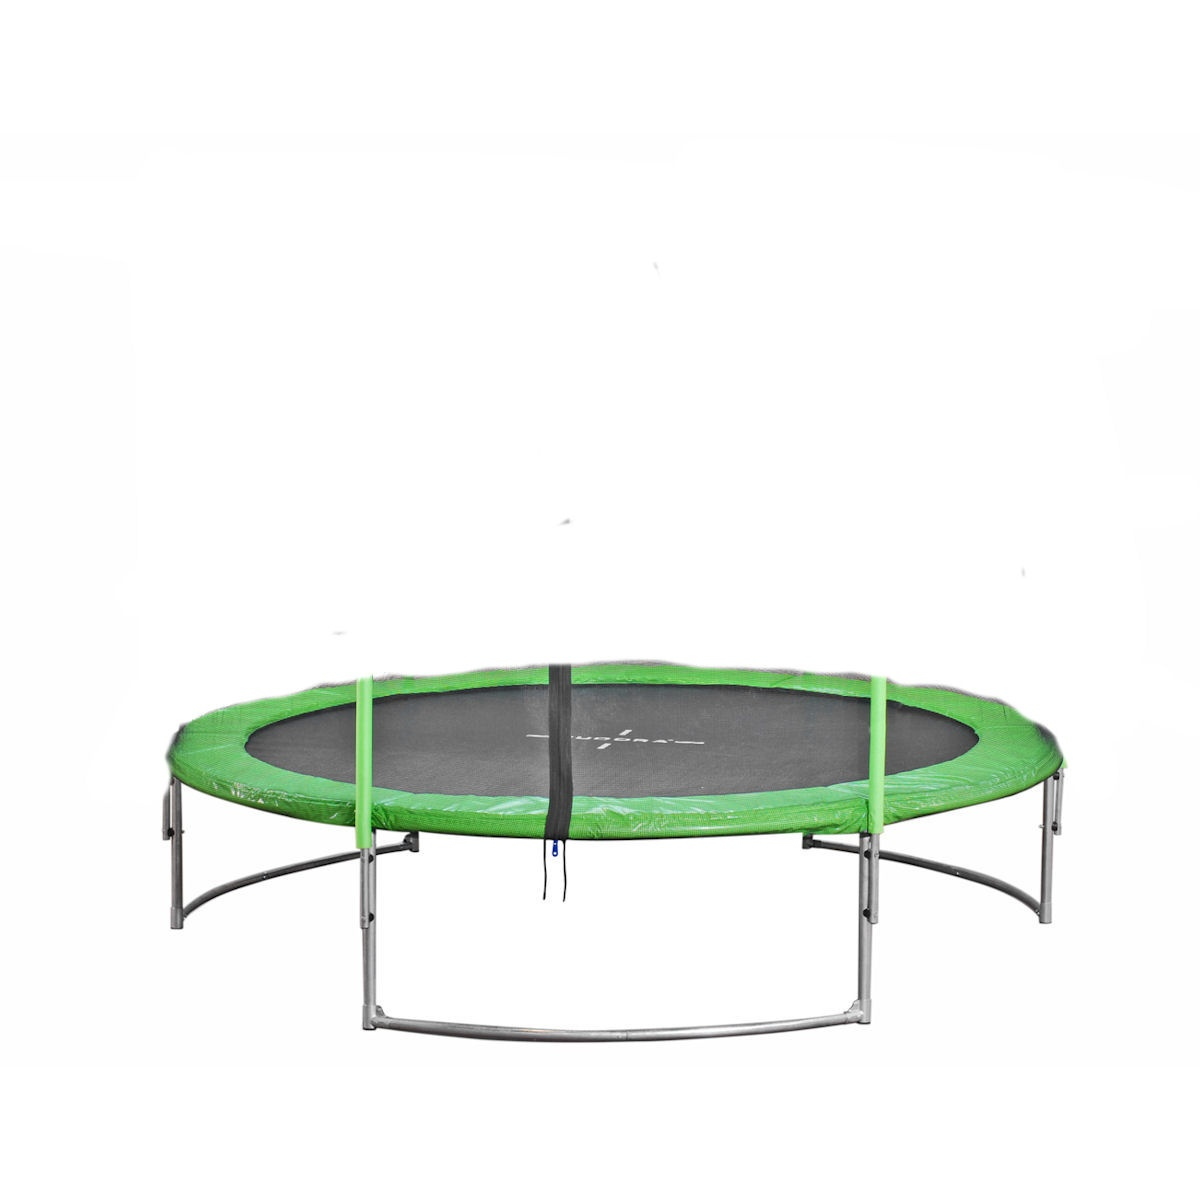 hudora randabdeckung rahmenpolsterung f r family trampolin. Black Bedroom Furniture Sets. Home Design Ideas